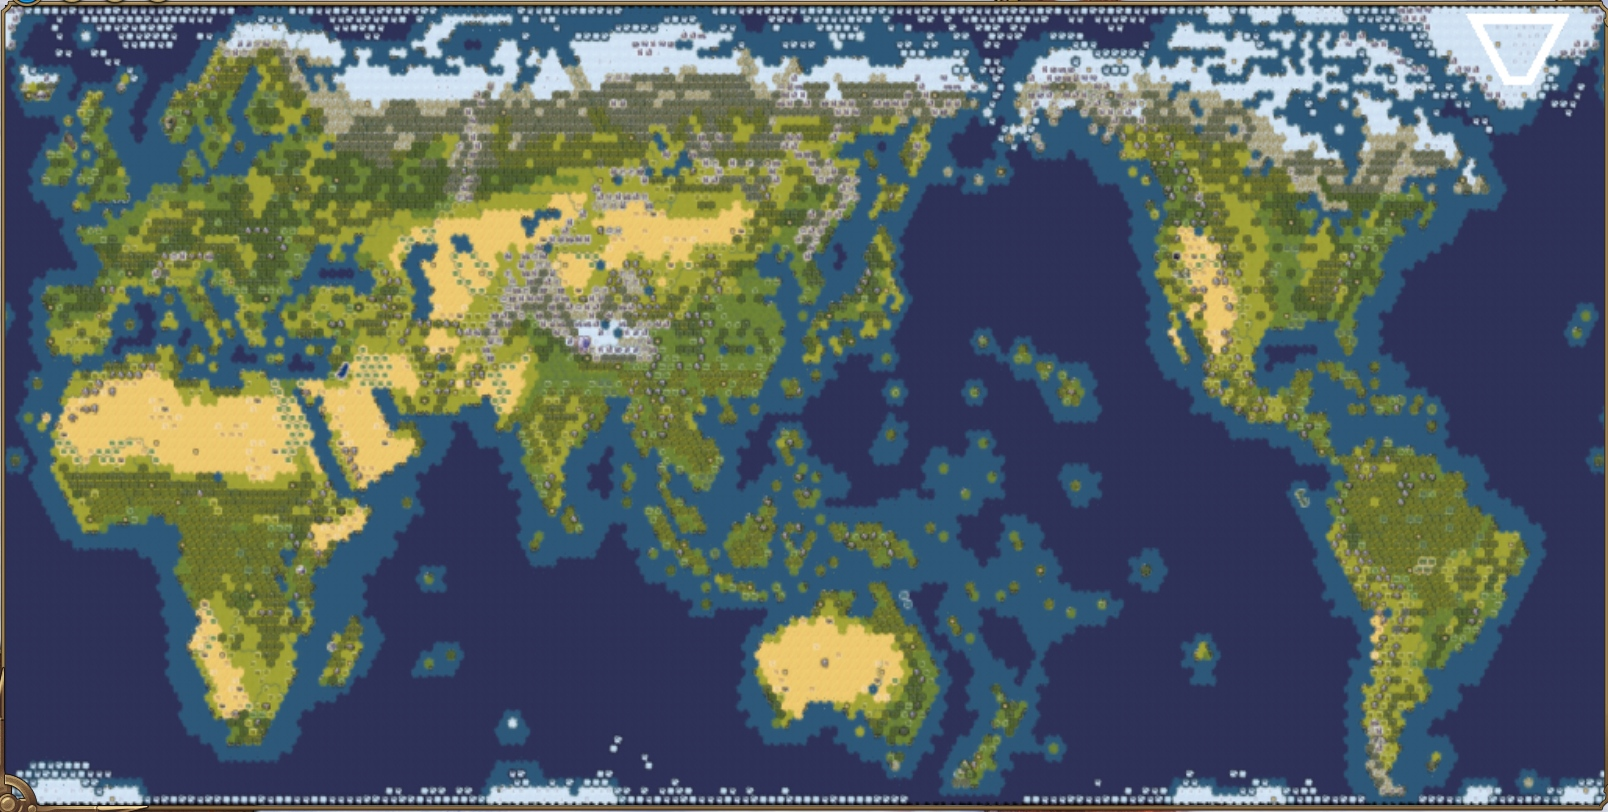 Civ 4 Earth Map.Civ4 Giant Earth Map Best View And Photos Earth Aimage Org